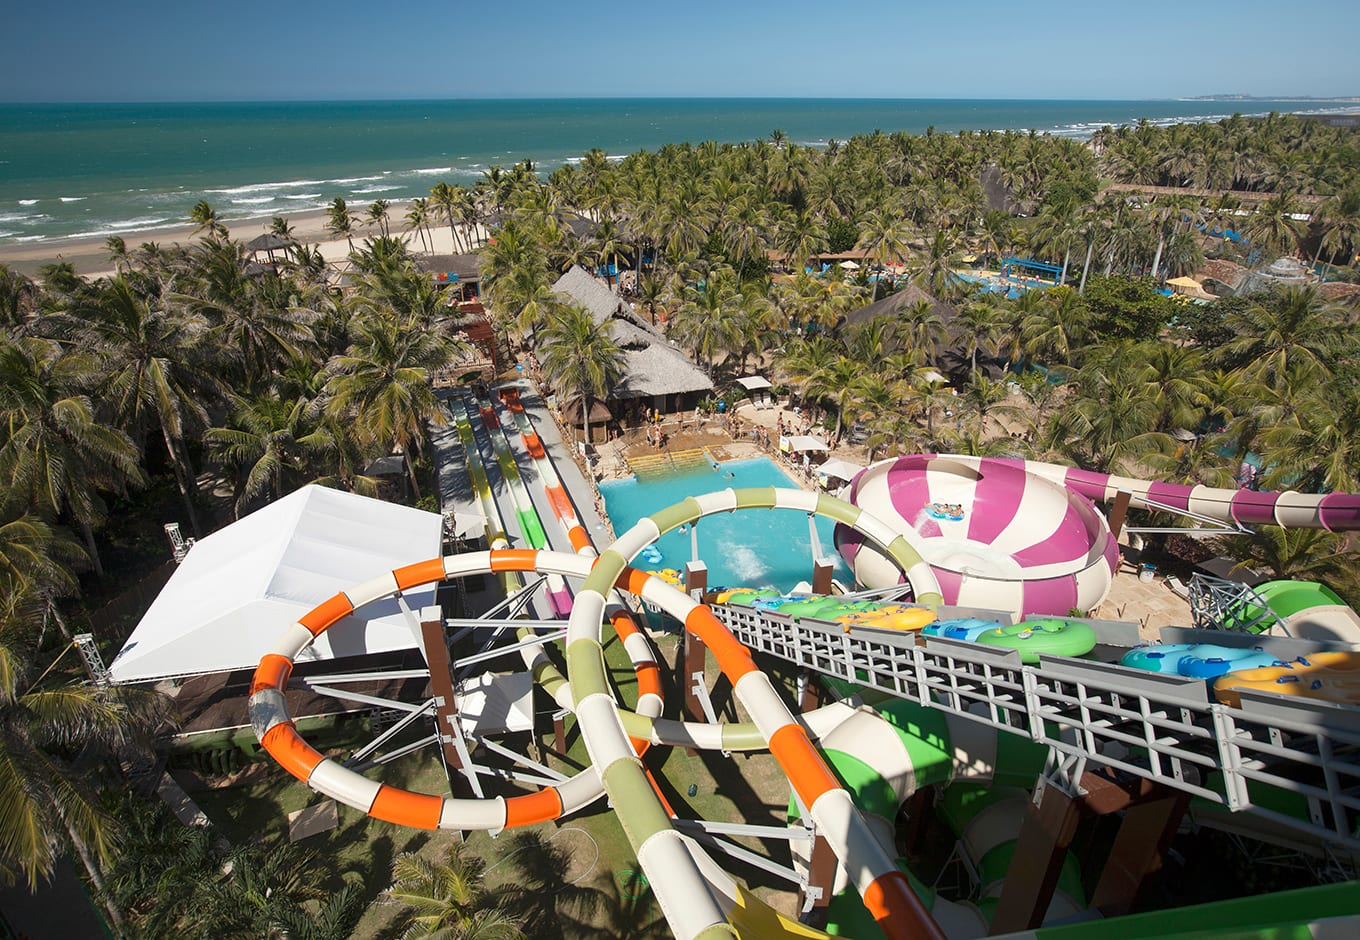 Aerial view of the waterslides at the Beach Park Fortaleza, Brazil.